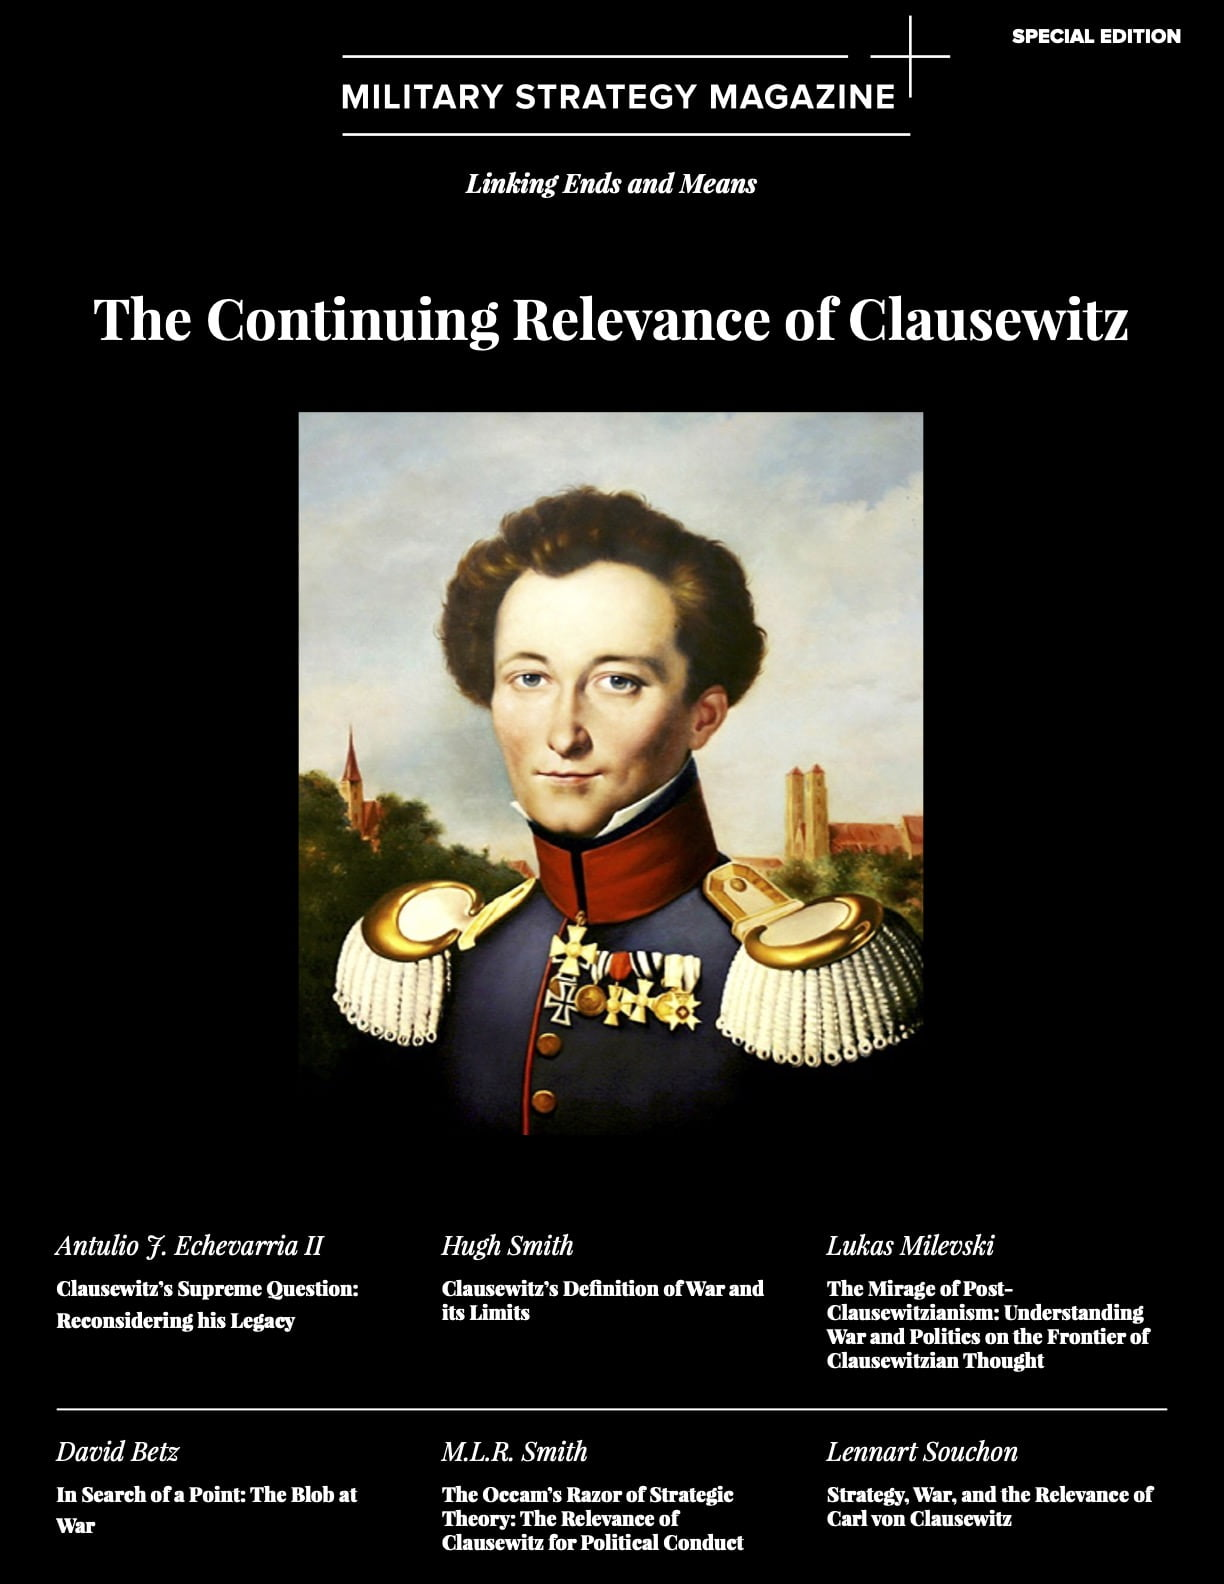 The Continuing Relevance of Clausewitz